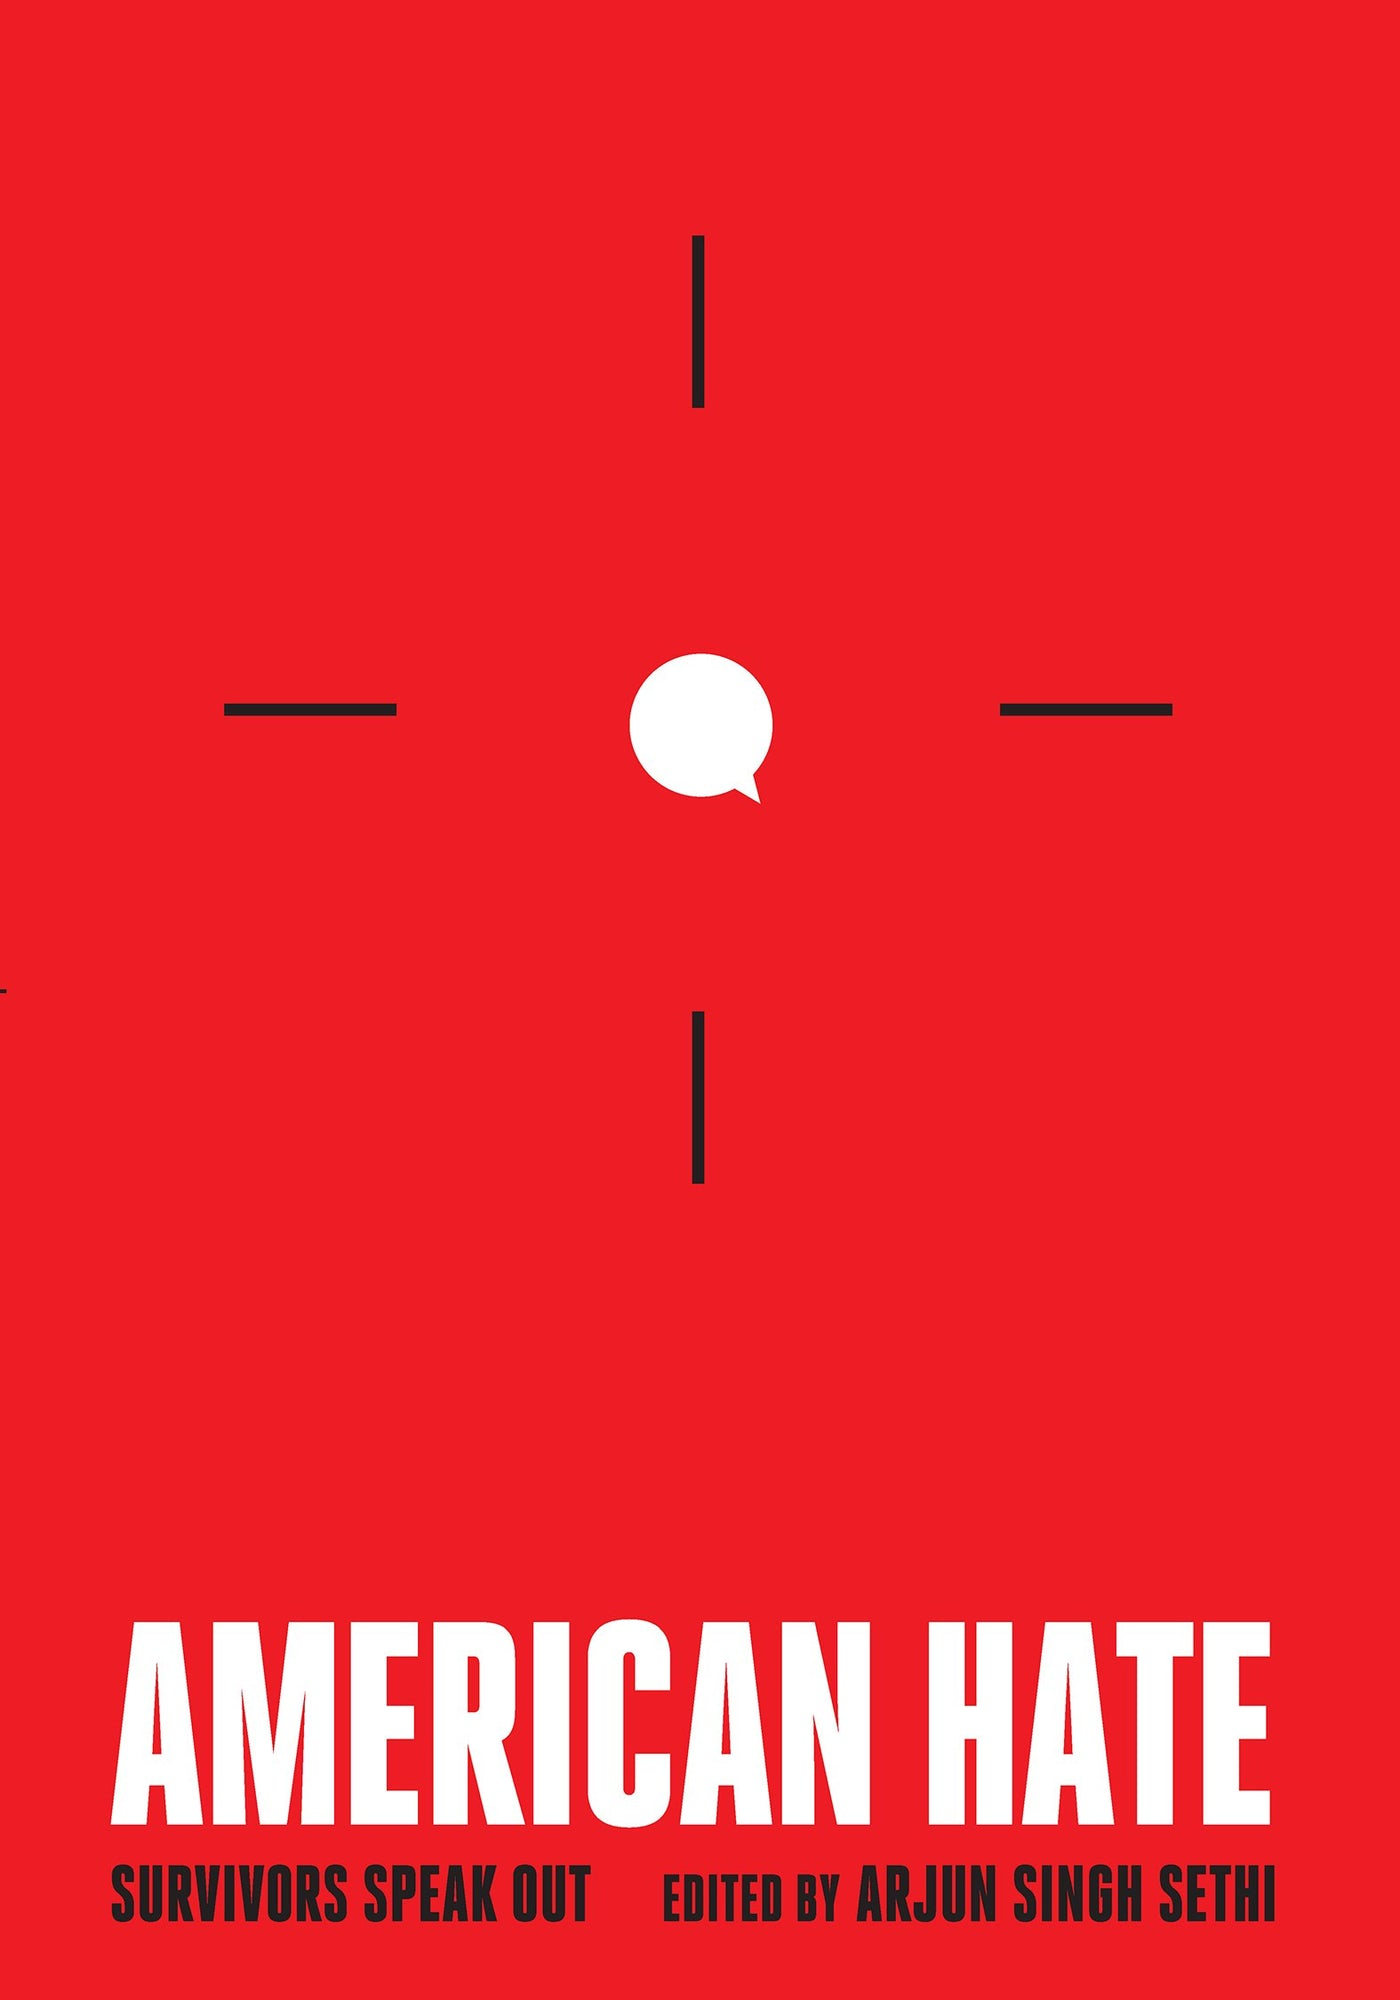 American Hate: Survivors Speak Out by Arjun Singh Sethi